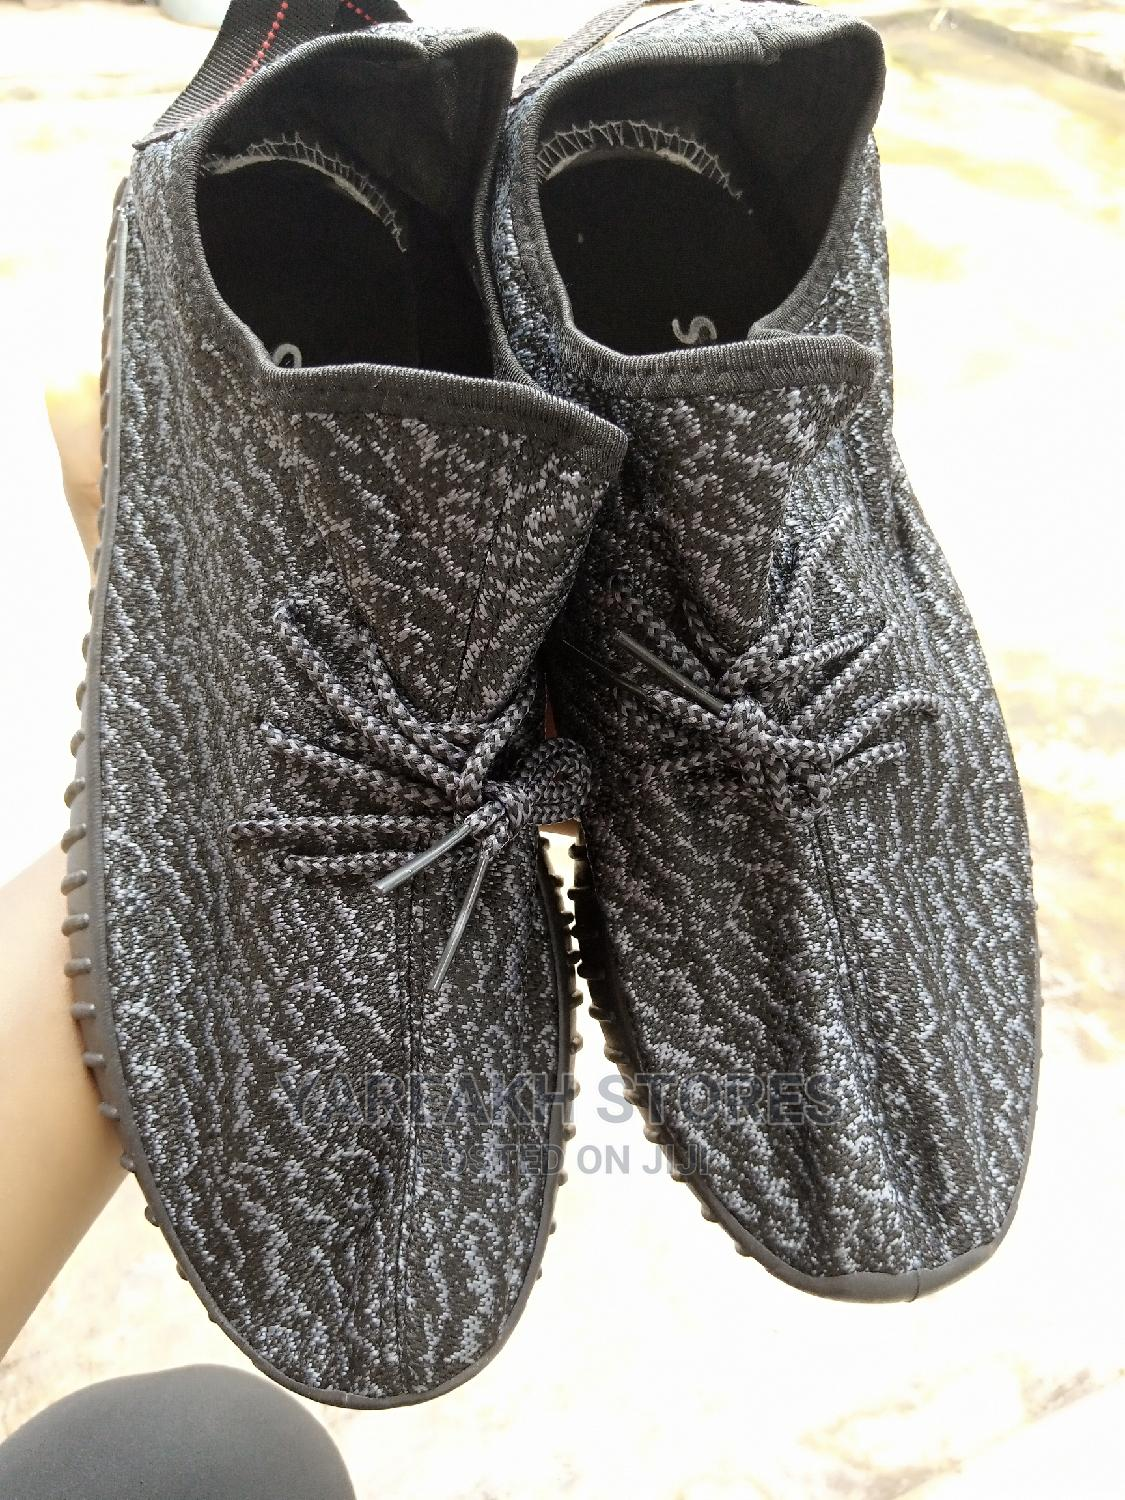 Unisex Sneakers.   Shoes for sale in Benin City, Edo State, Nigeria